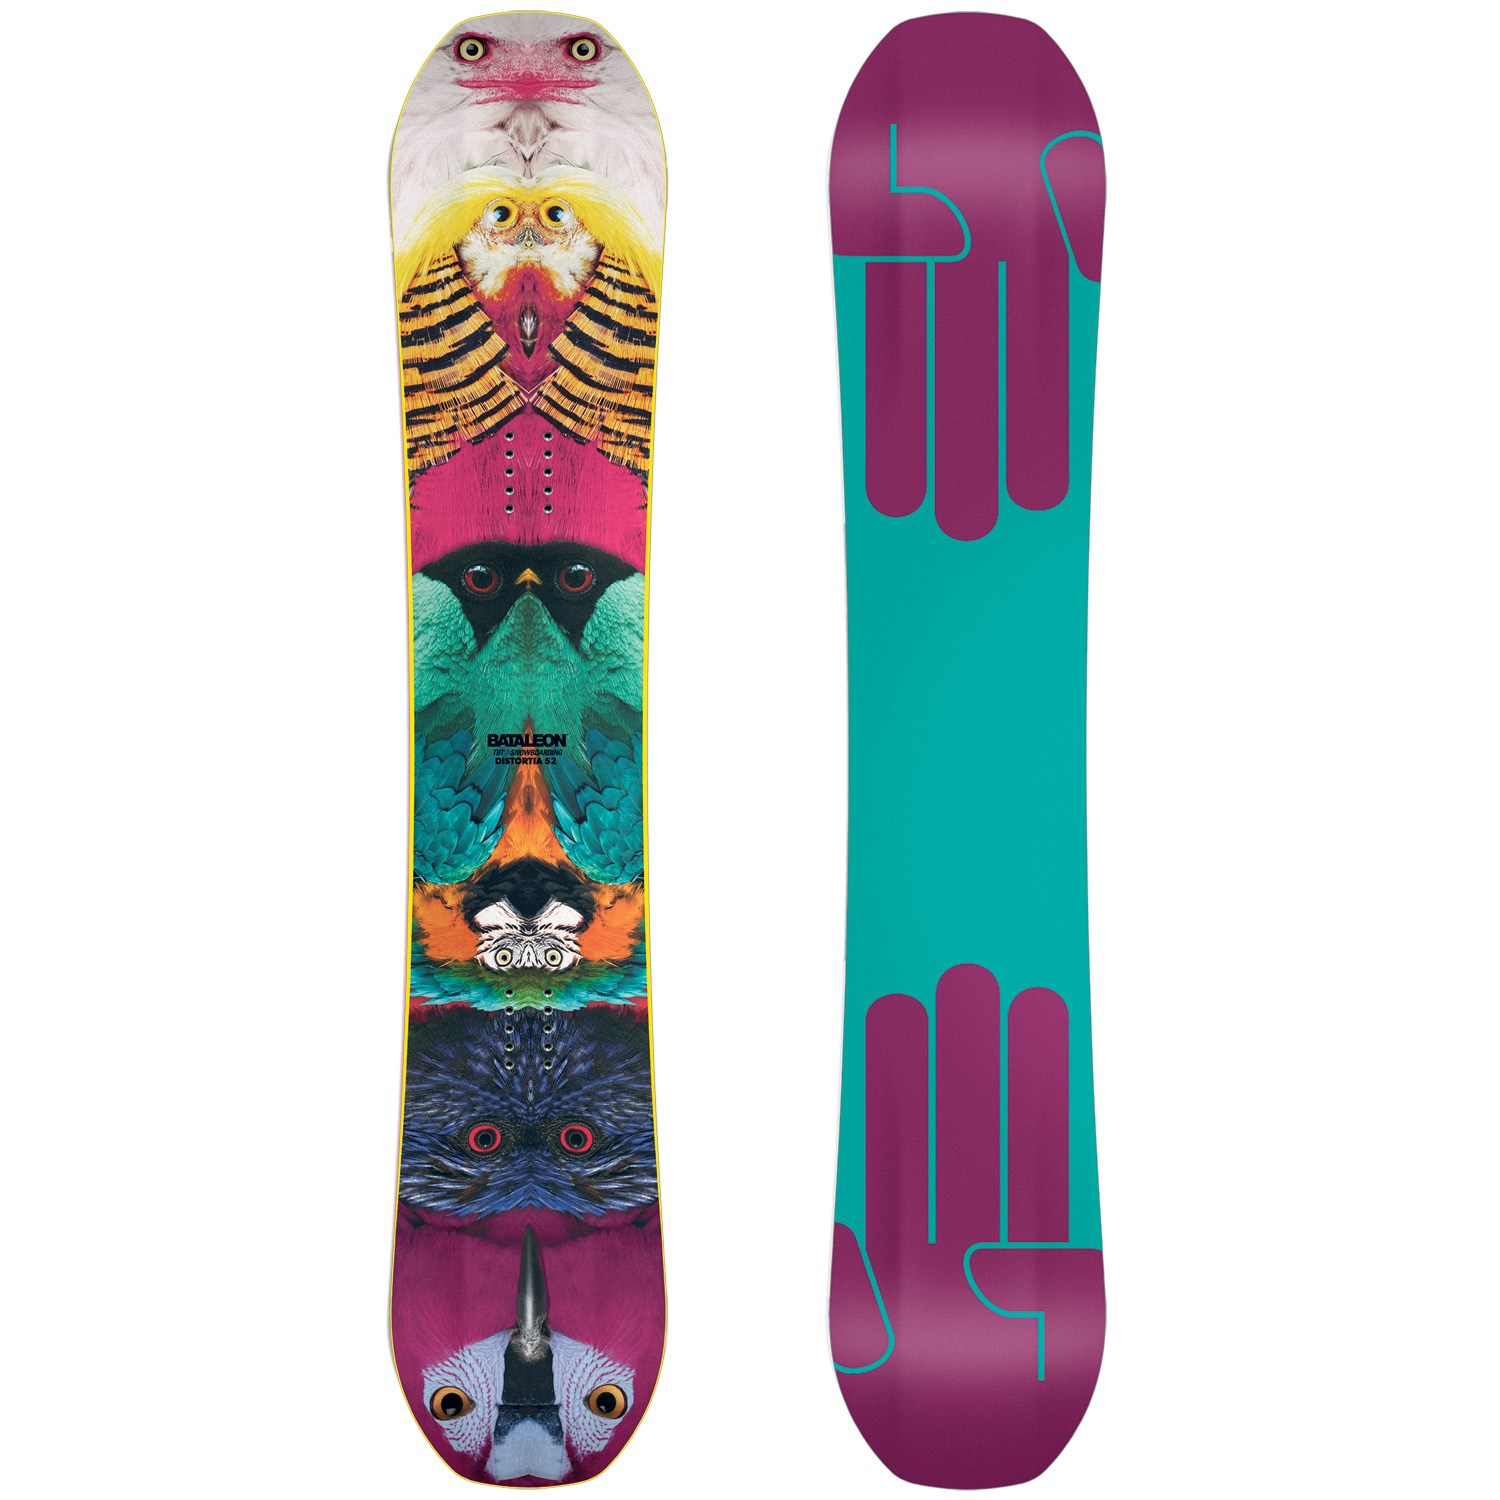 10c58cd9845a The Best Women s Snowboard Designs - SnowSista